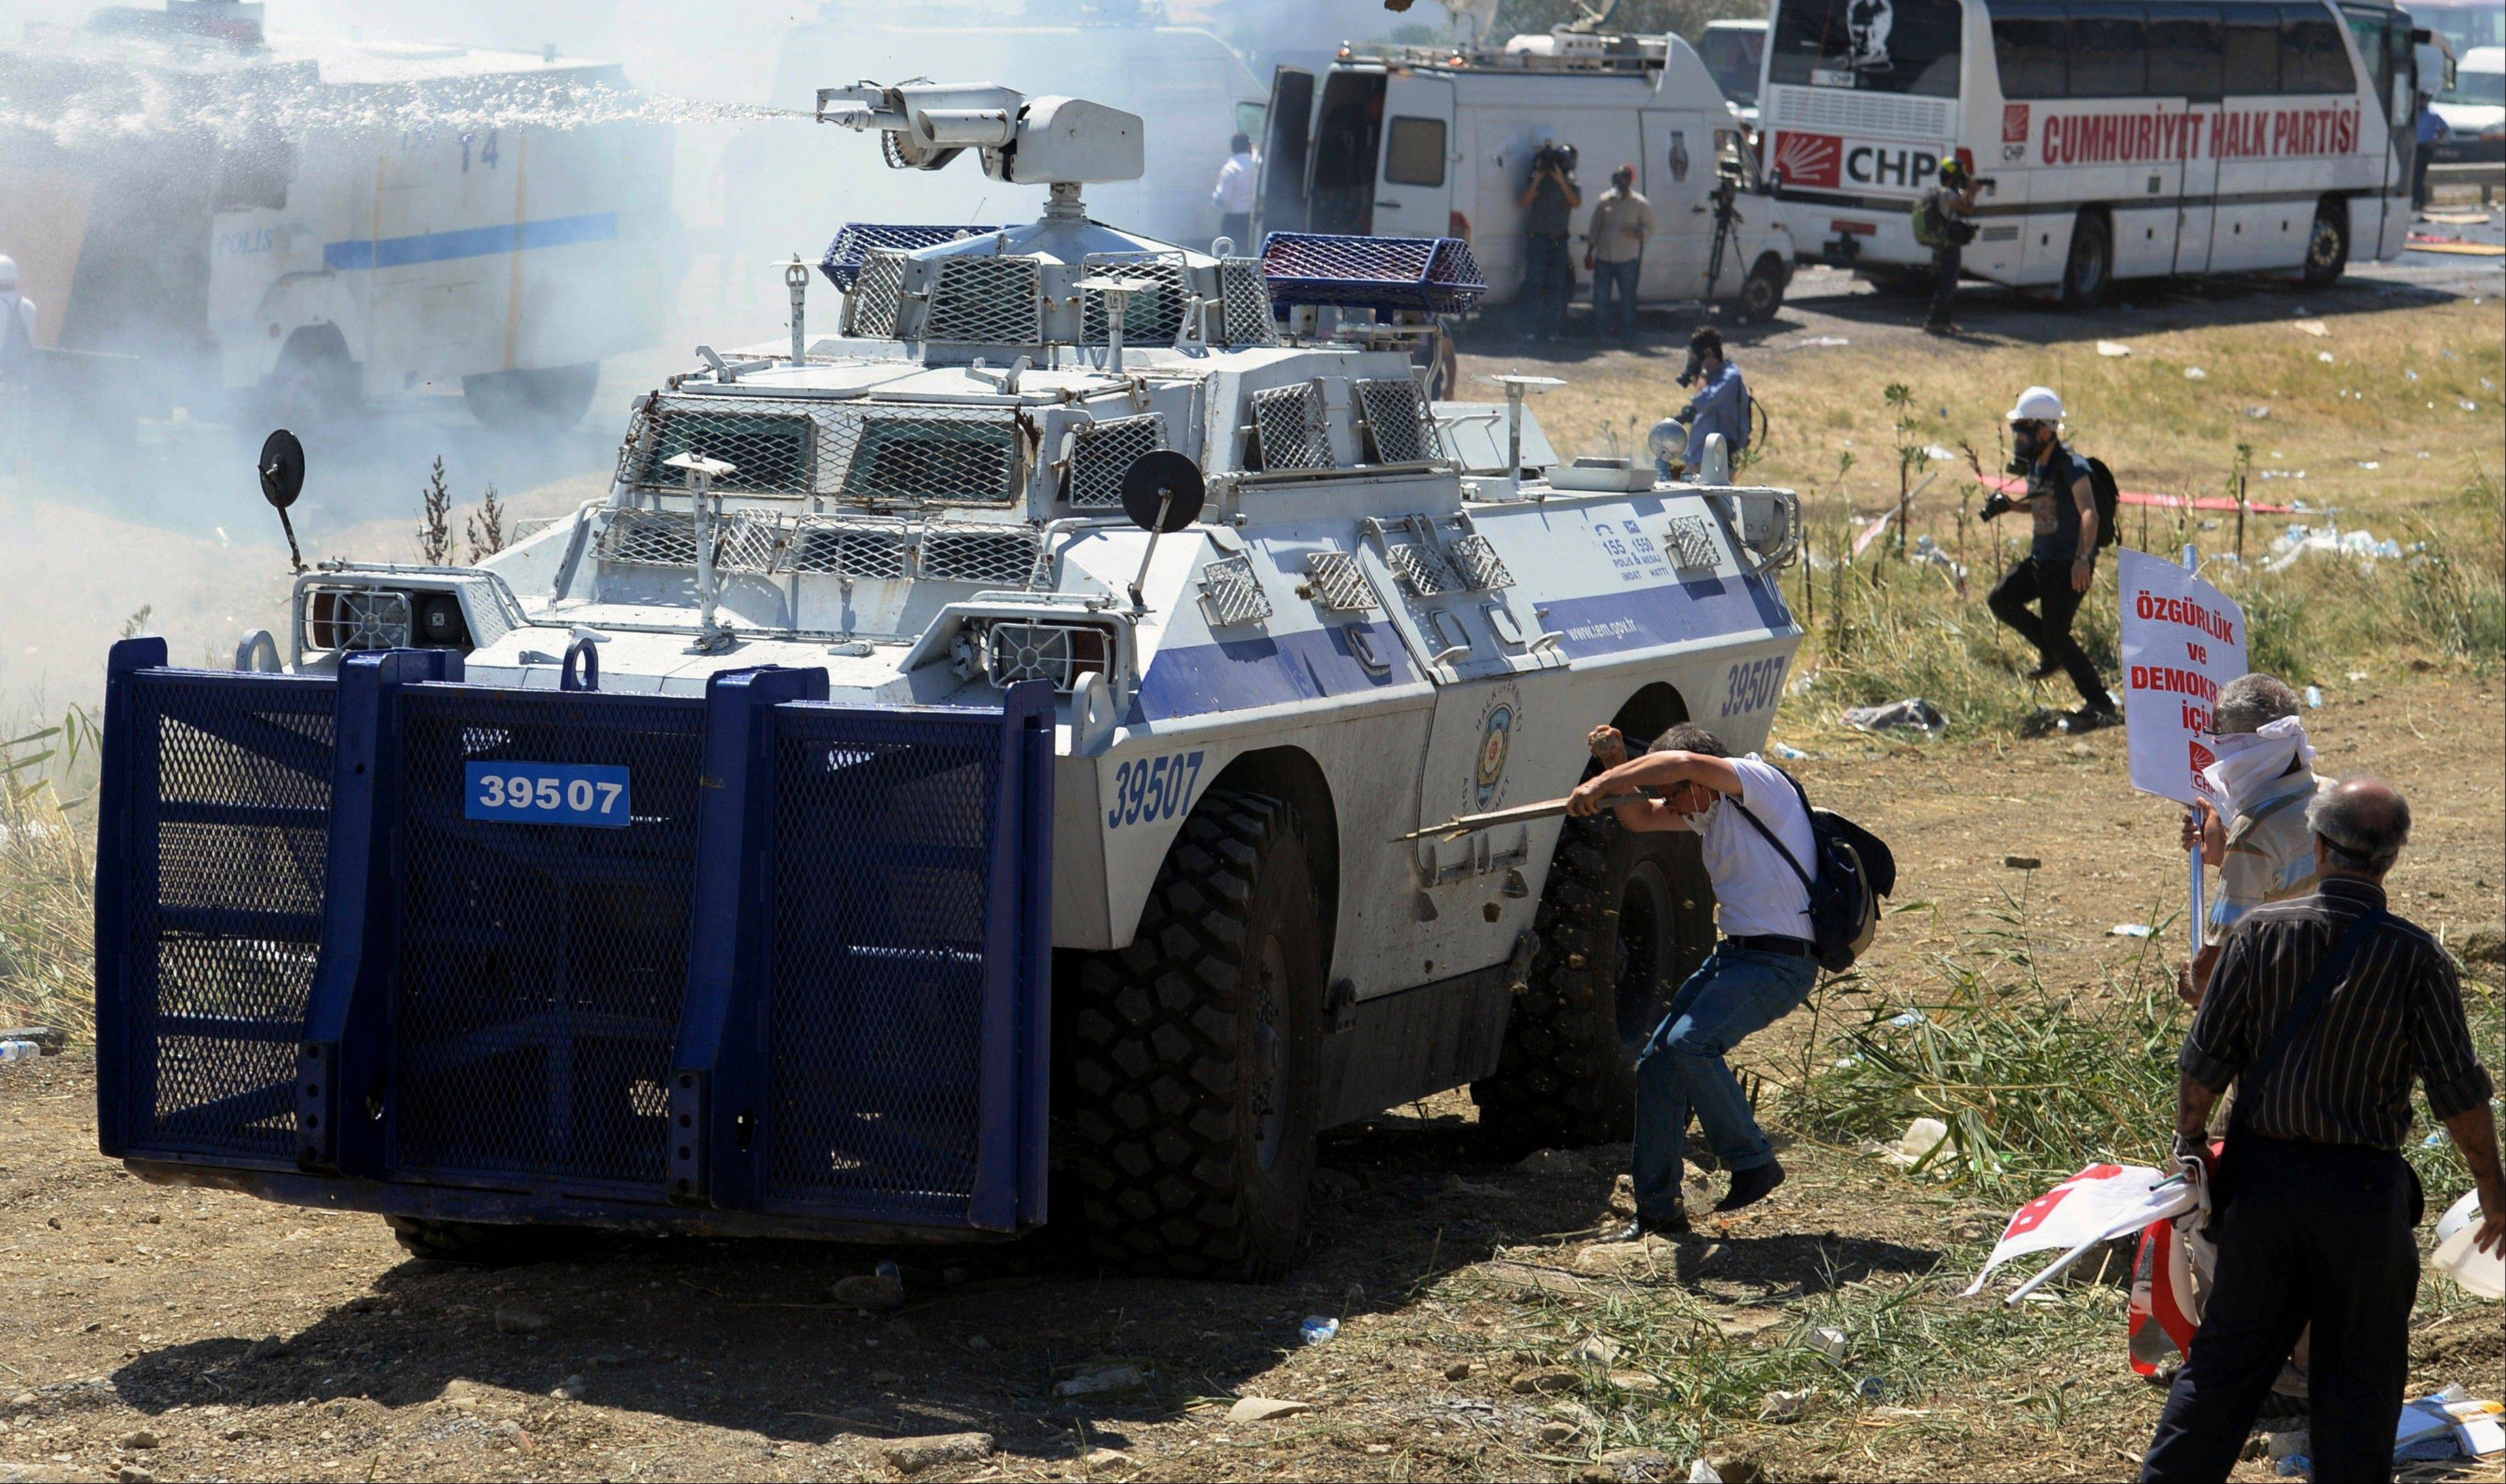 Protesters clash with riot and paramilitary polices as they fire tear gas and use water cannons to disperse them outside the Silivri jail complex in Silivri, Turkey, Monday, Aug. 5, 2013. Some 275 people � including military officers, politicians and journalists � are facing verdicts in a landmark and divisive trial in Turkey over an alleged conspiracy to overthrow the government. The court has acquitted 21 people accused of plotting to overthrow the Islamist-rooted government in the five-year �Ergenekon� trial and sentenced of up to 47 years or life terms in jails some of the other 254 defendants.